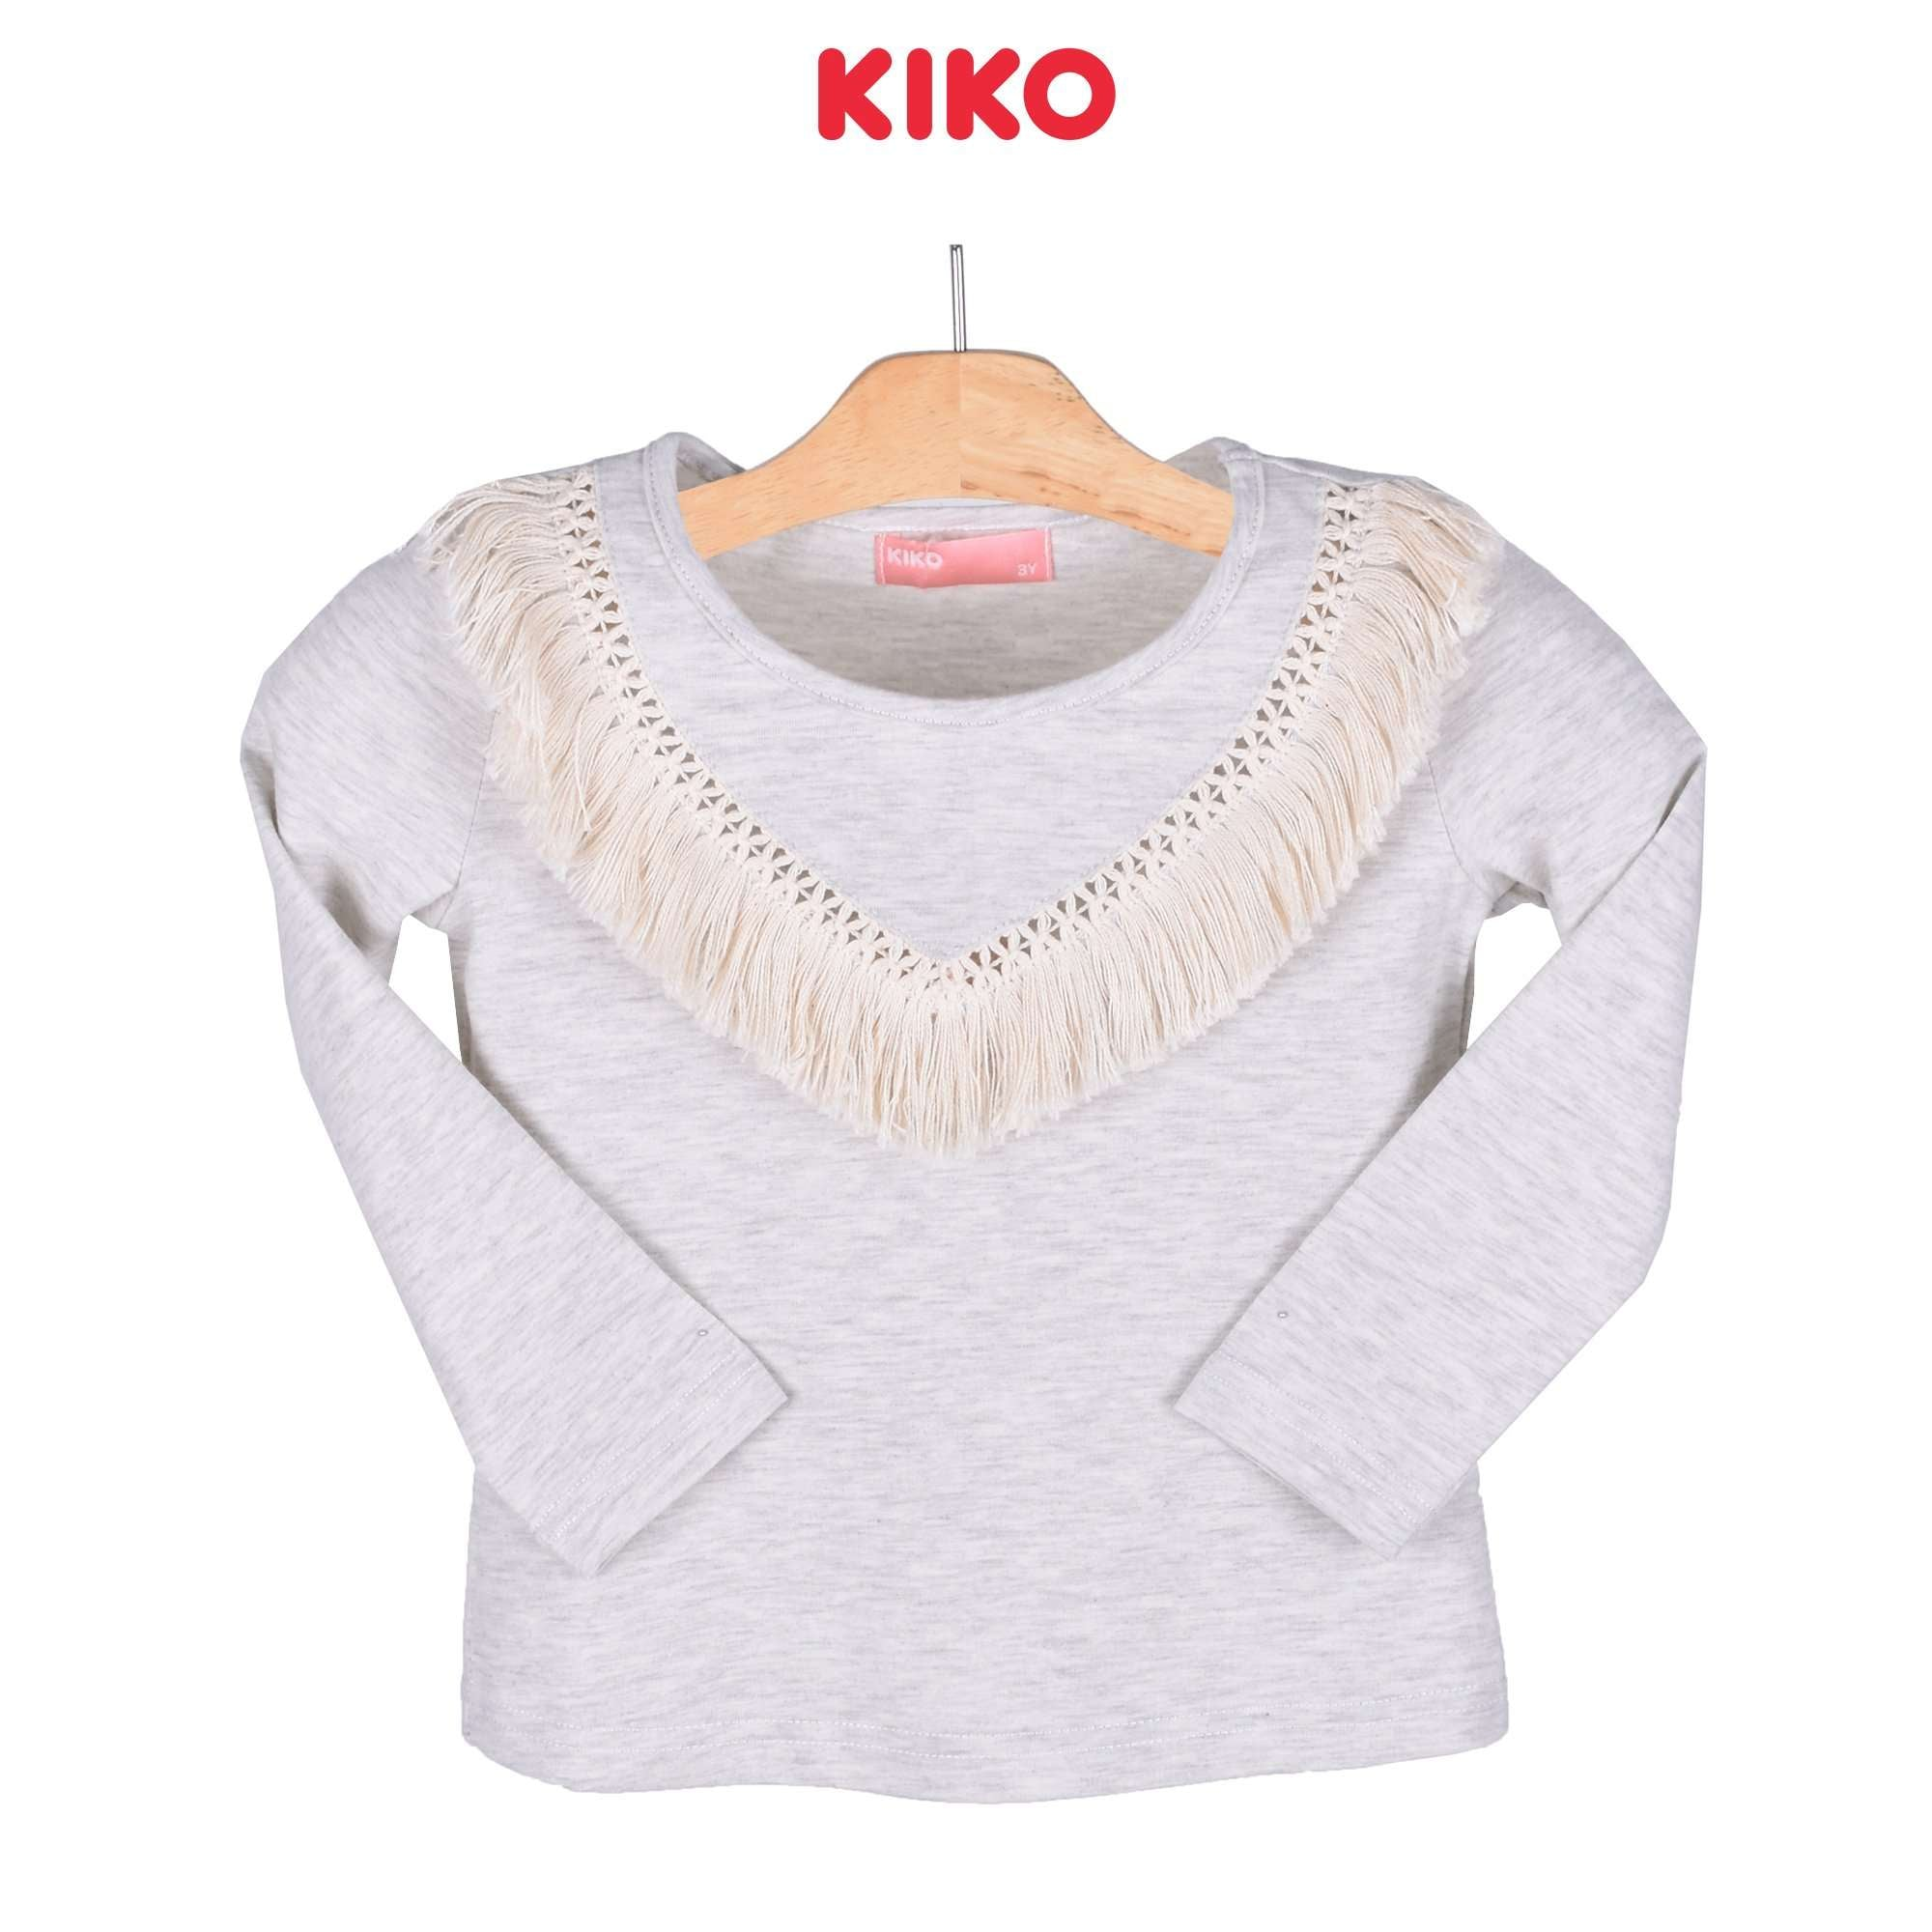 KIKO Girl Long Sleeve Tee 135066-131 : Buy KIKO online at CMG.MY